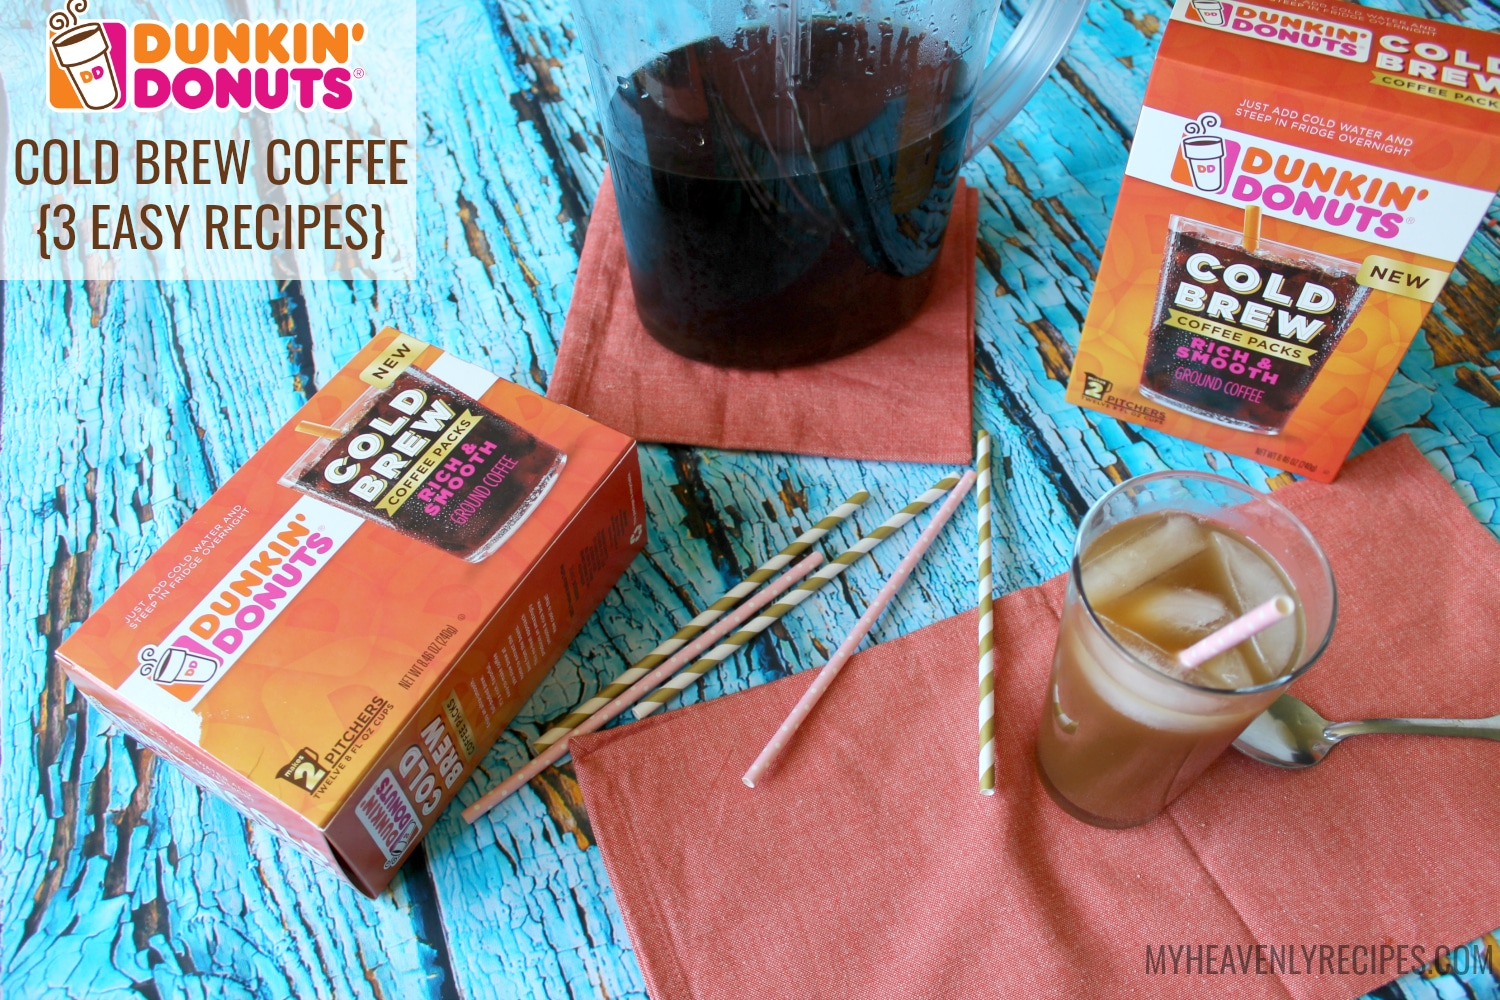 You can now enjoy the smooth taste of Cold Brew Coffee with Dunkin Donuts Cold Brew Coffee packs.